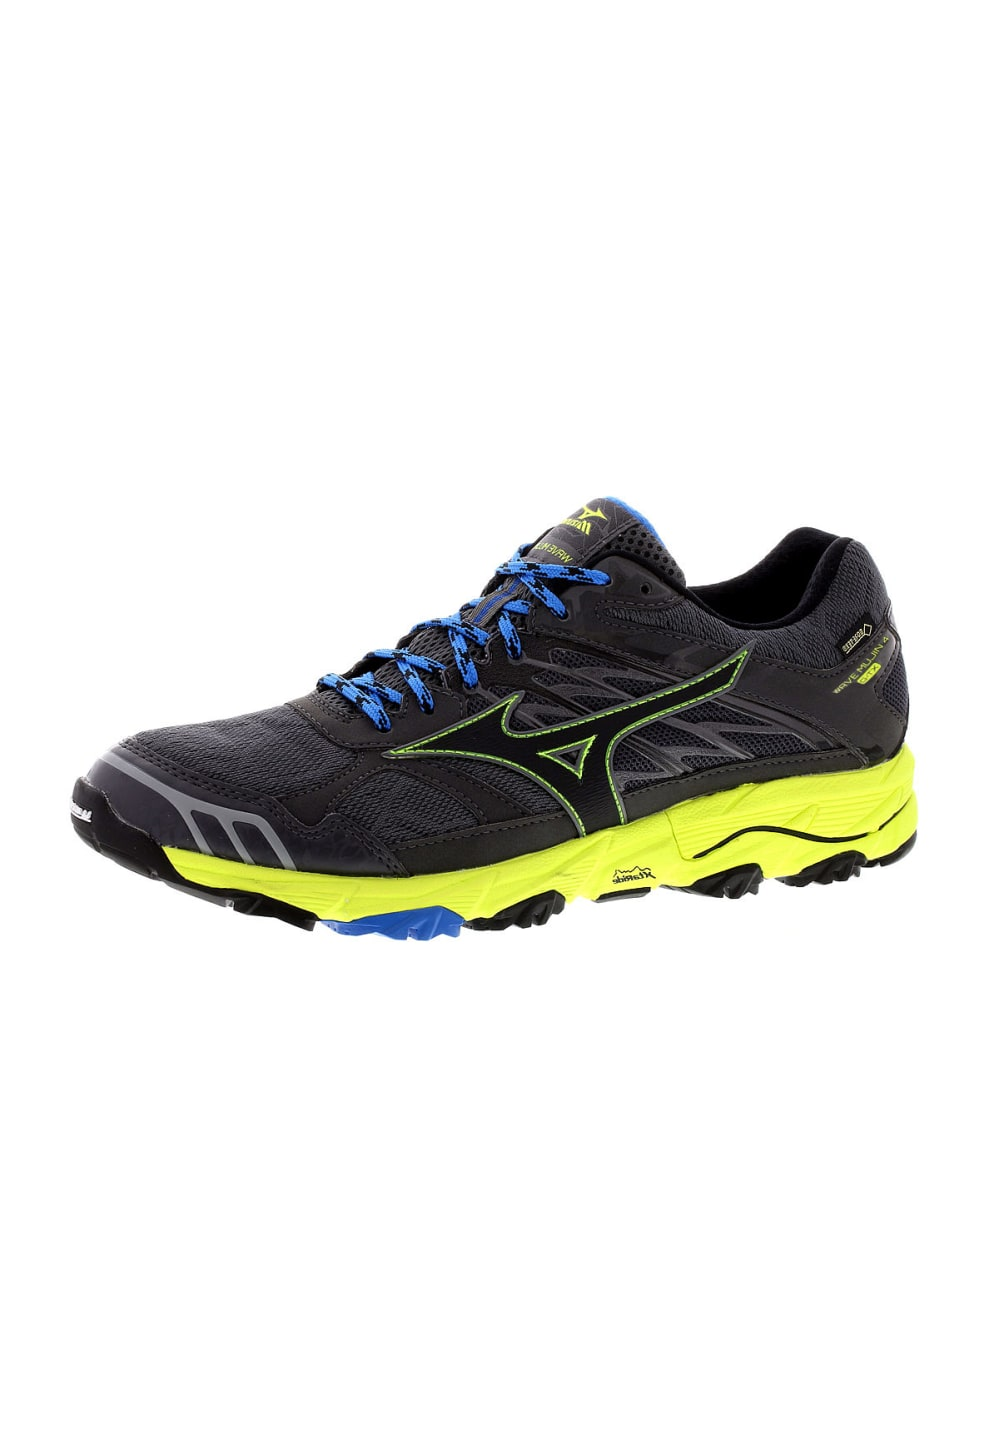 on sale 1b53f 36a6b Mizuno Herren Wave Mujin 4 Laufschuhe